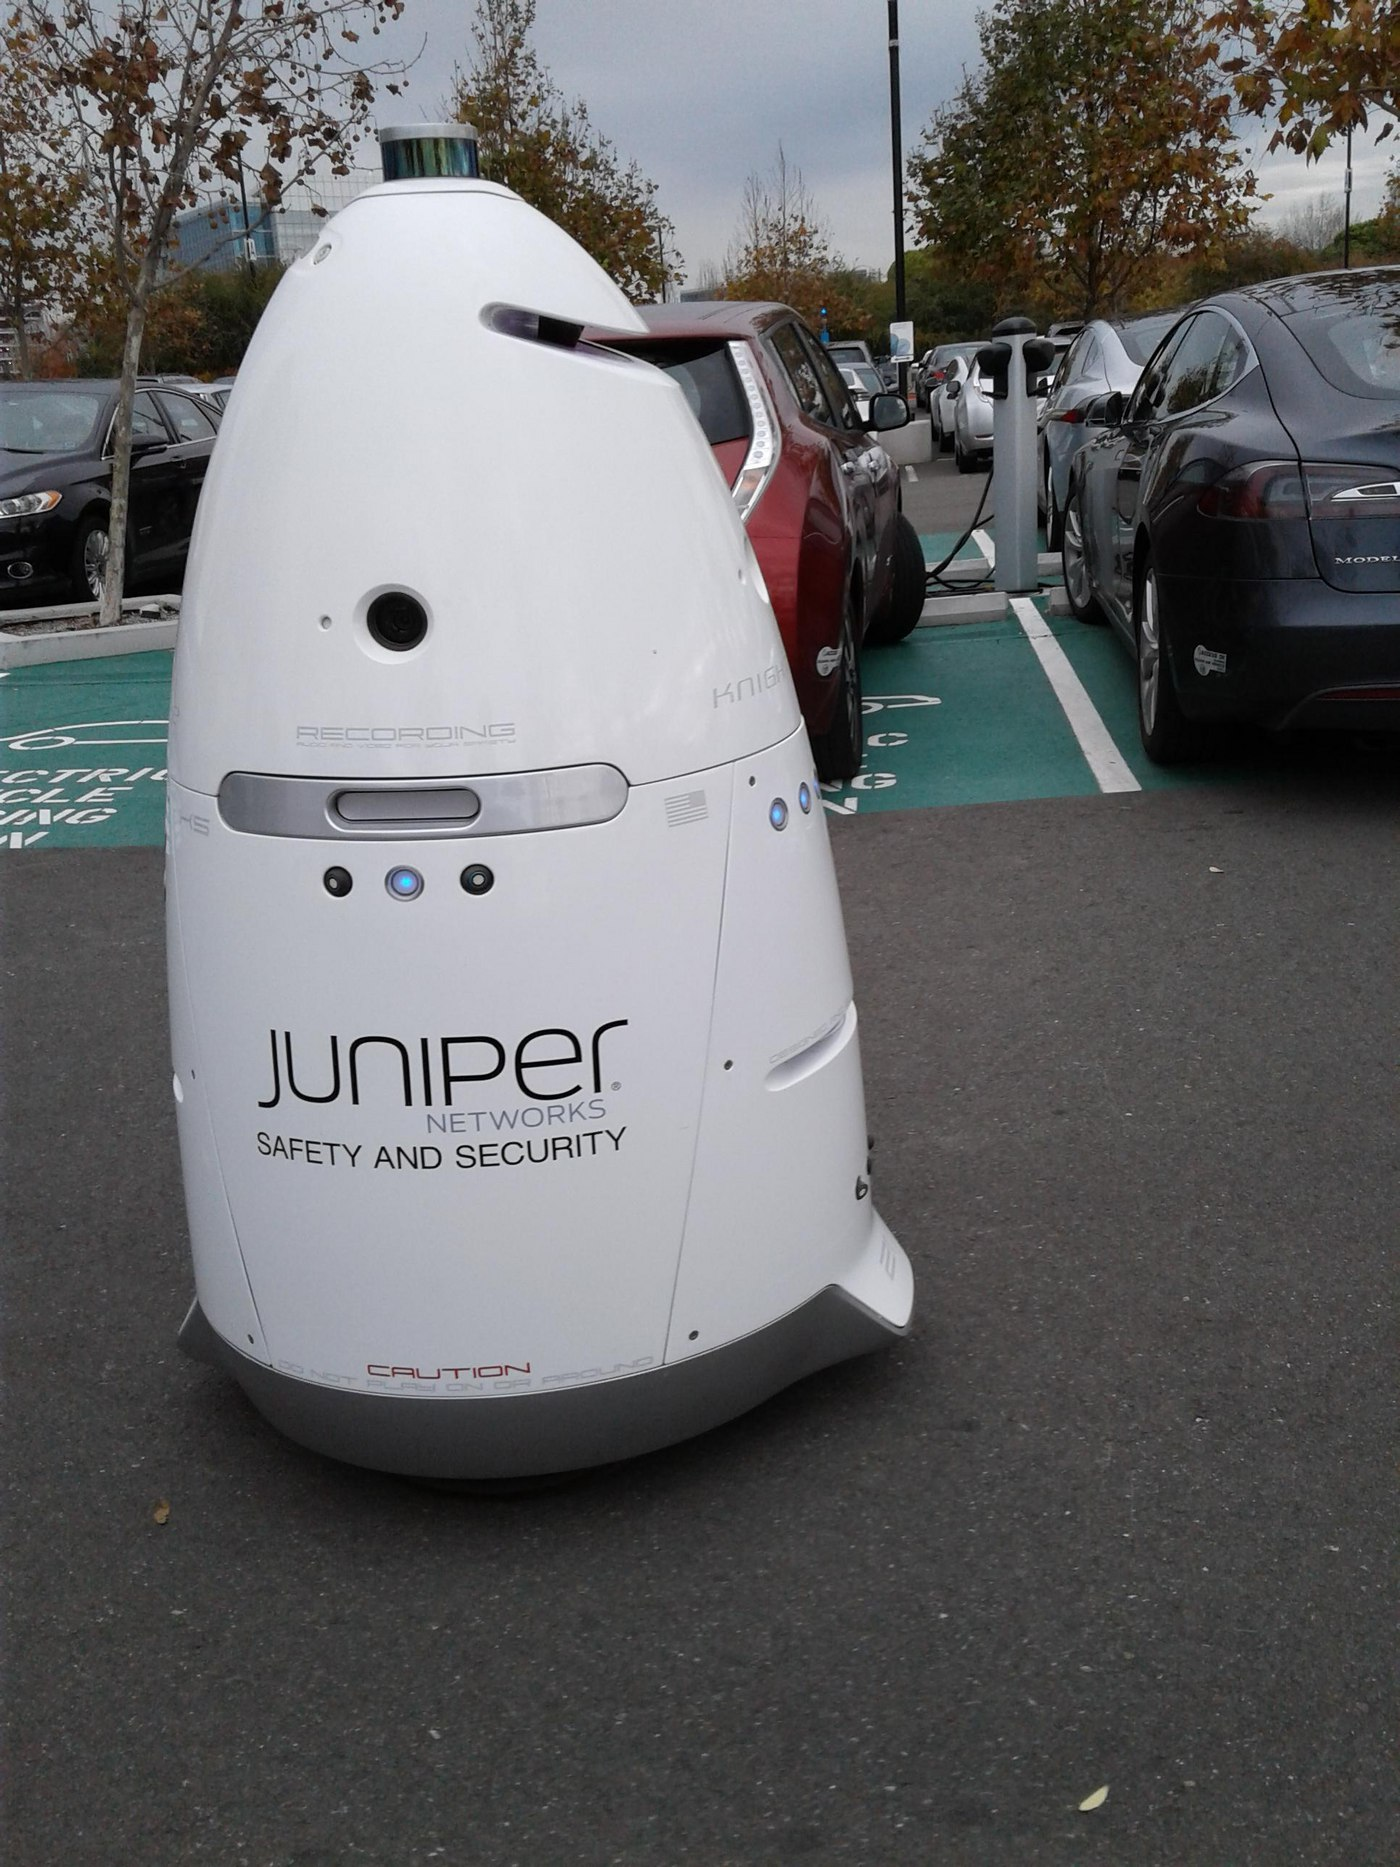 What Presents Can We Expect Juniper Networks to Deliver?